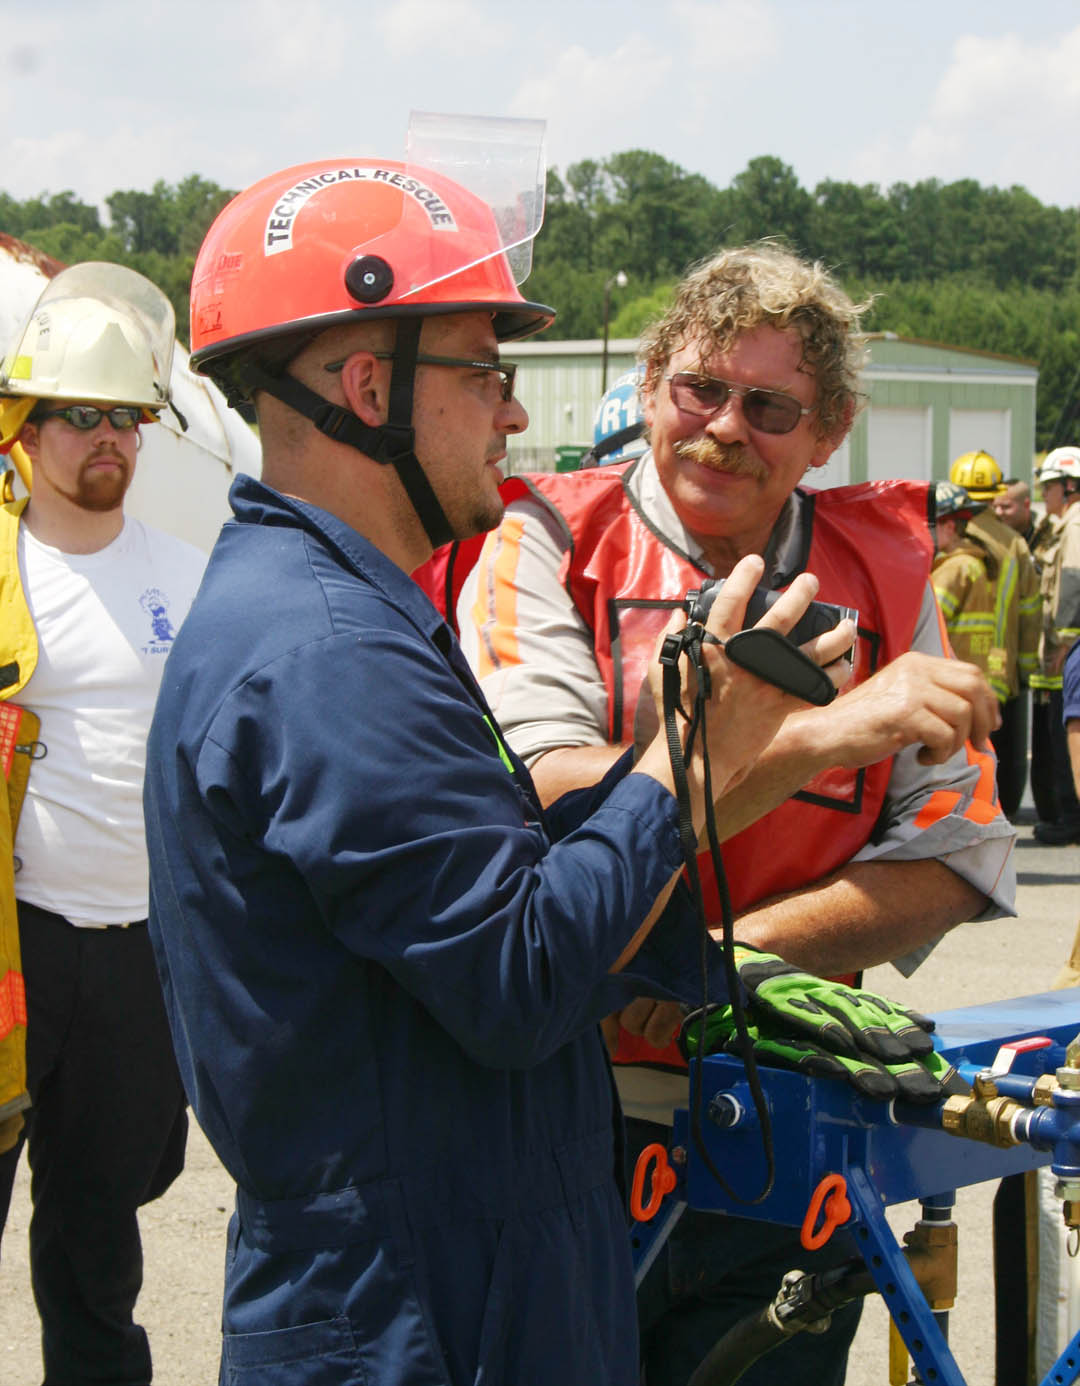 Click to enlarge,  Irakli West (center), captain of the Haar Fire Department in Bavaria, Germany, speaks with Kevin Cieciorka, of Pittsboro, owner of Chatham County Alignment & Towing and an instructor, at the 'Big Lift U' training June 13-14 at Central Carolina Community College's Emergency Services Training Center. The event trained 77 firefighters from eight states and one foreign country to safely and effectively respond to accidents involving smaller vehicles with large, heavy vehicles, such as tractor-trailers, buses, concrete trucks, and a train. West came to learn more about extrication in these types of accidents. He also runs Germany's largest online firefighters' magazine, Feuerwehr im Netz, and has posted photographs and commentary there about his Big Lift experience (see  fwnetz.de . For more information on ESTC emergency training programs, call (919) 776-5601.